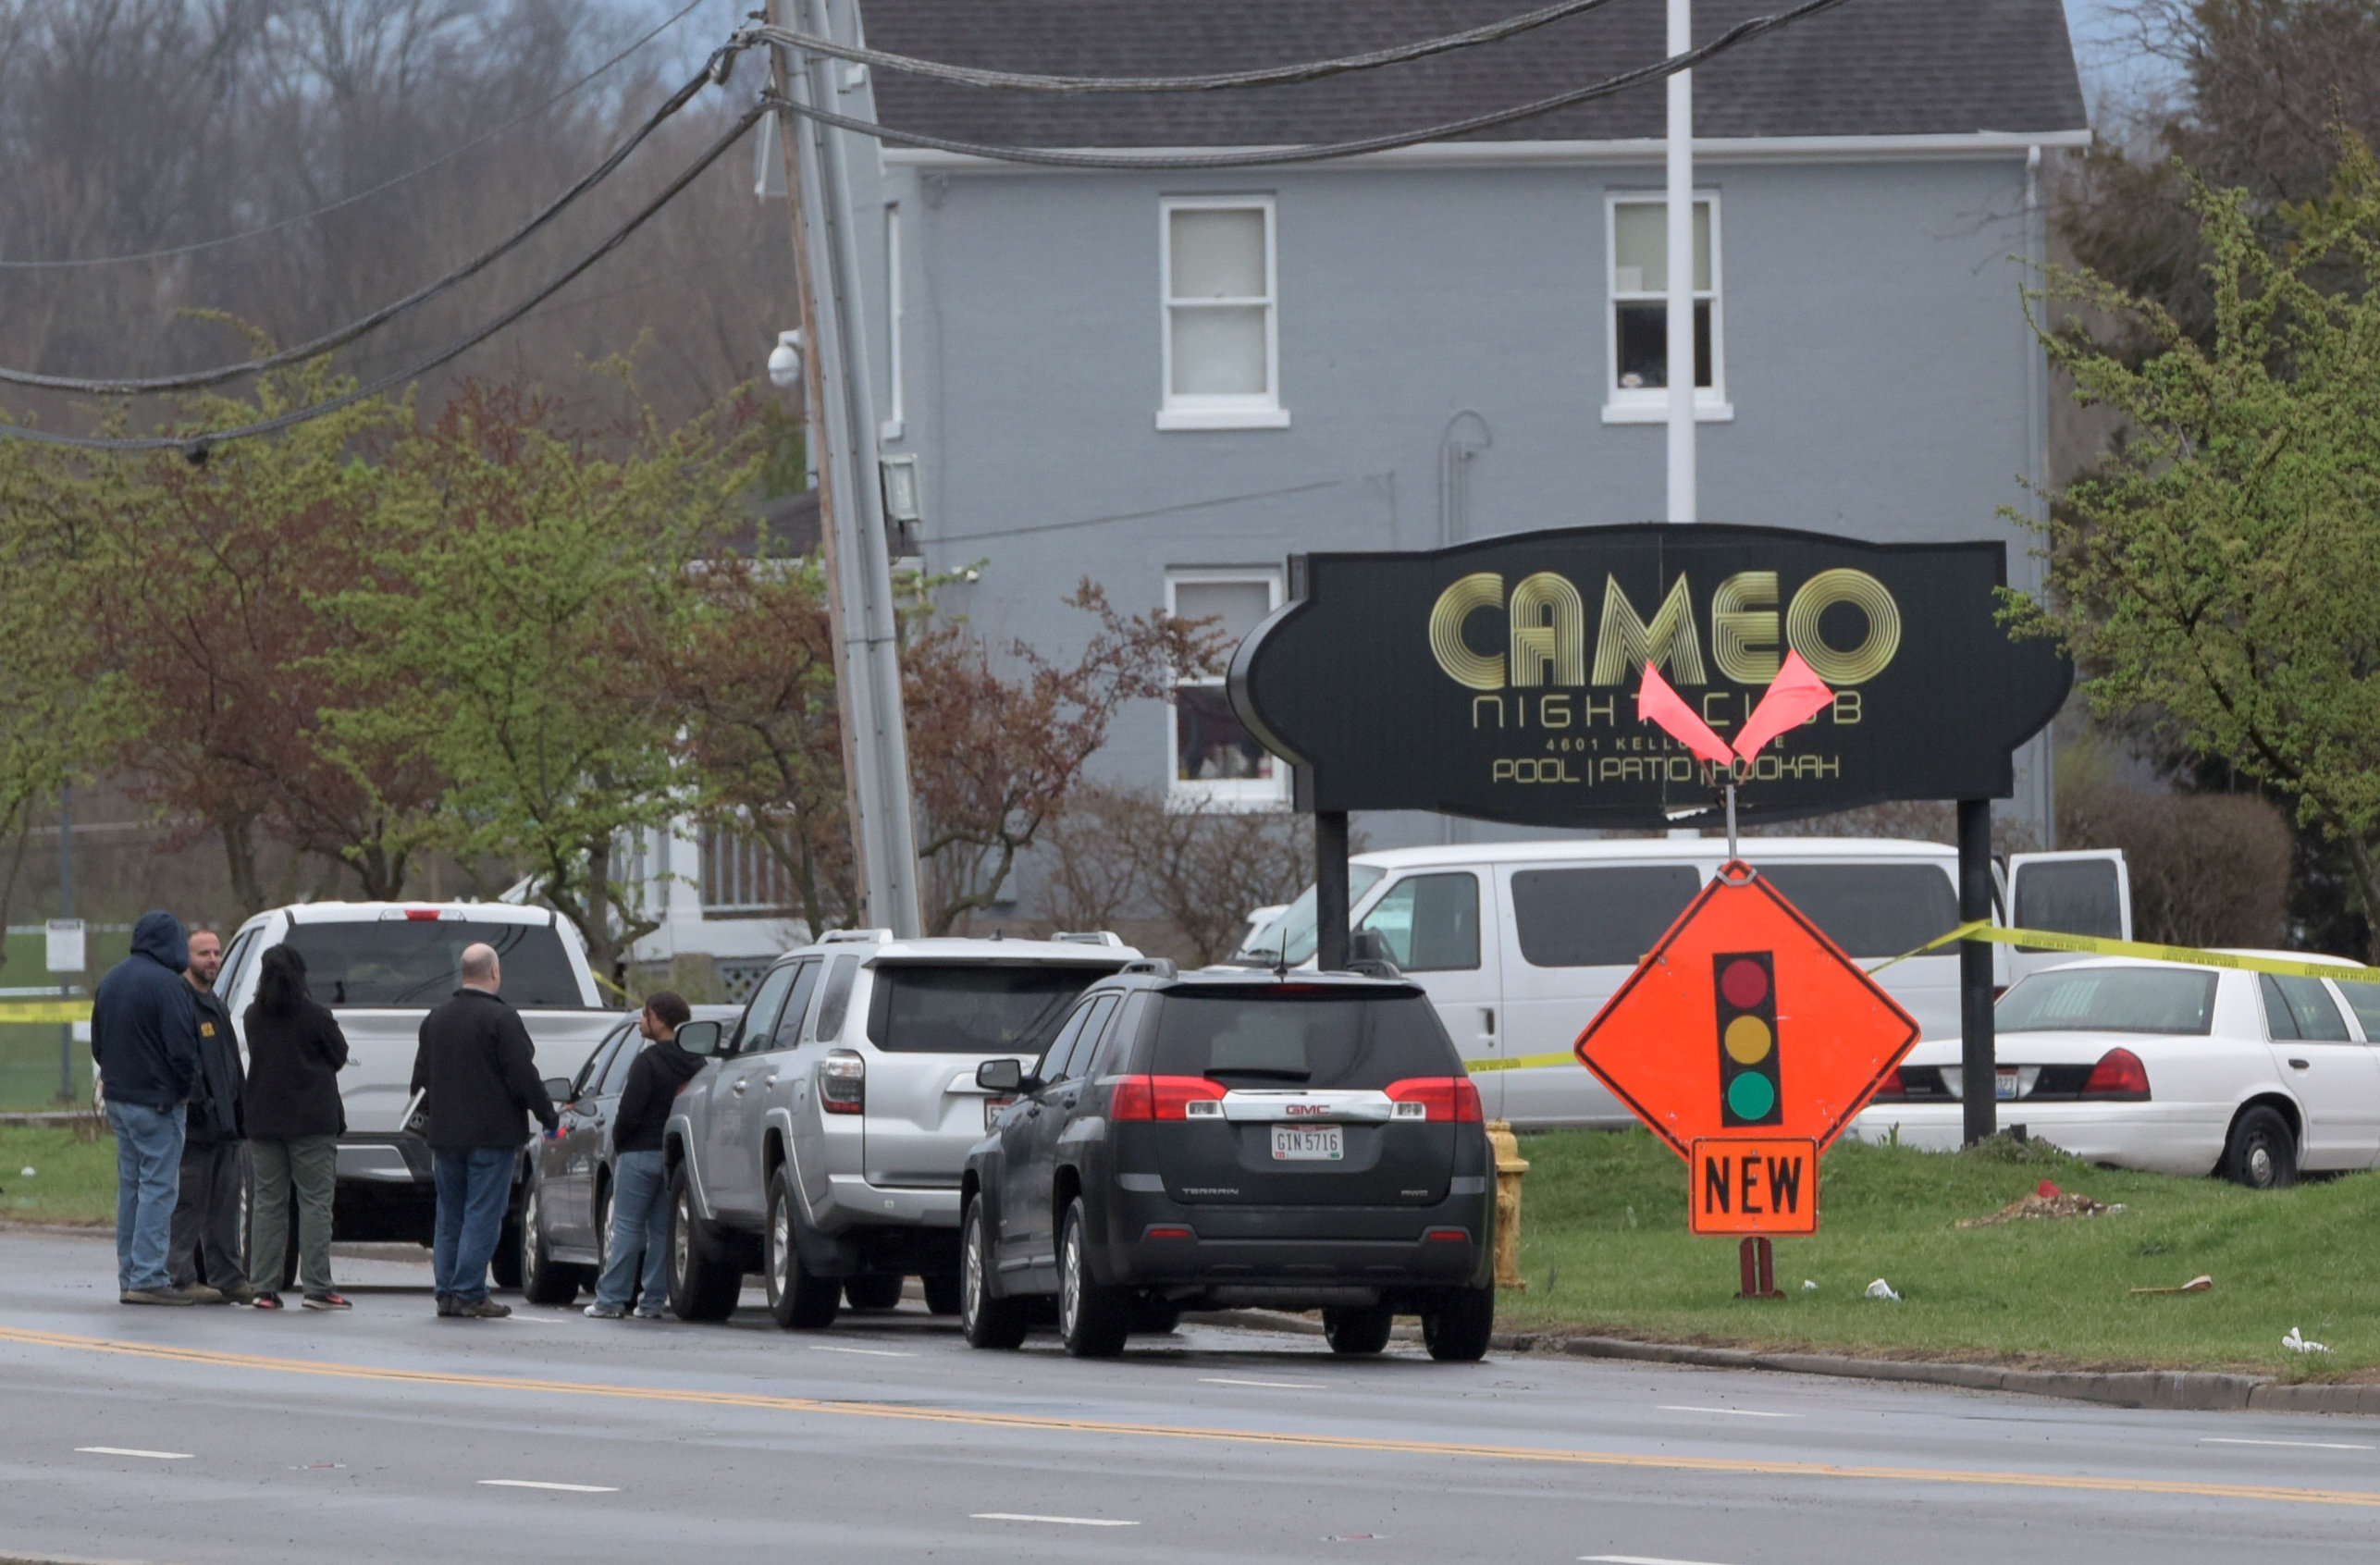 Police and Bureau of Alcohol, Tobacco and Firearms (ATF) personnel attend the scene of a mass shooting at the Cameo Nightlife club in Cincinnati, Ohio on March 26, 2017. (REUTERS/Caleb Hughes)